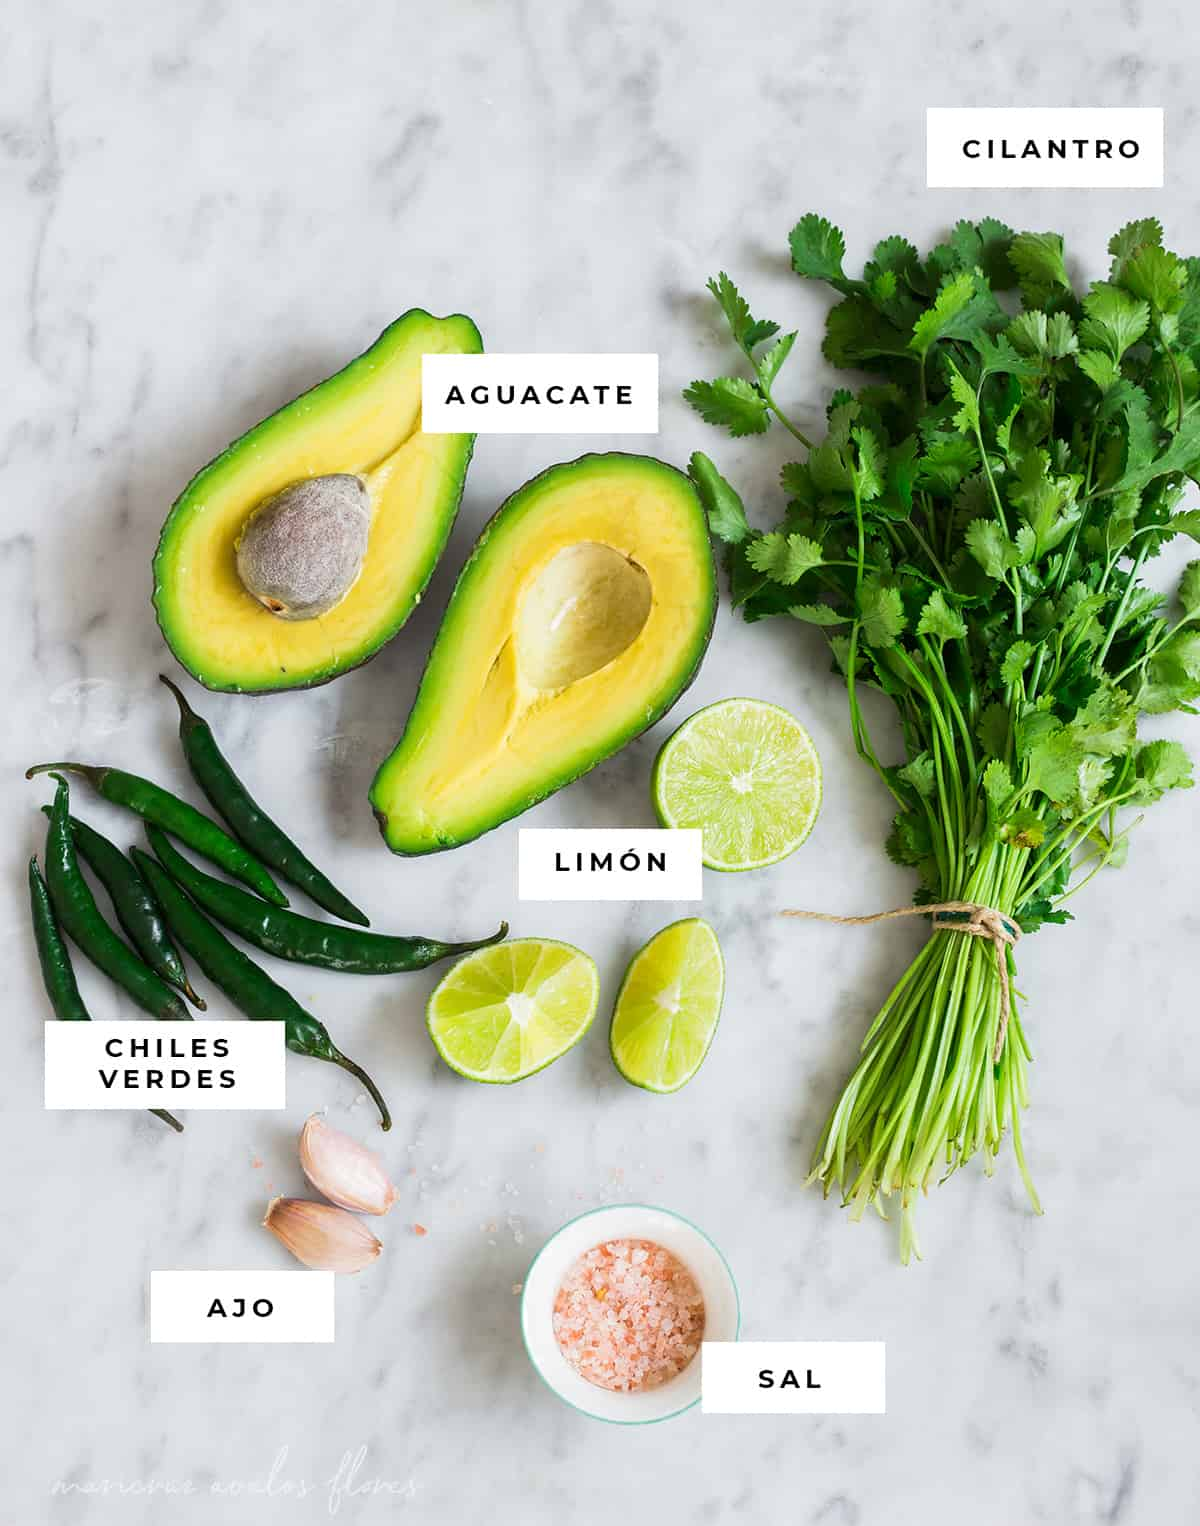 Avocado sauce ingredients